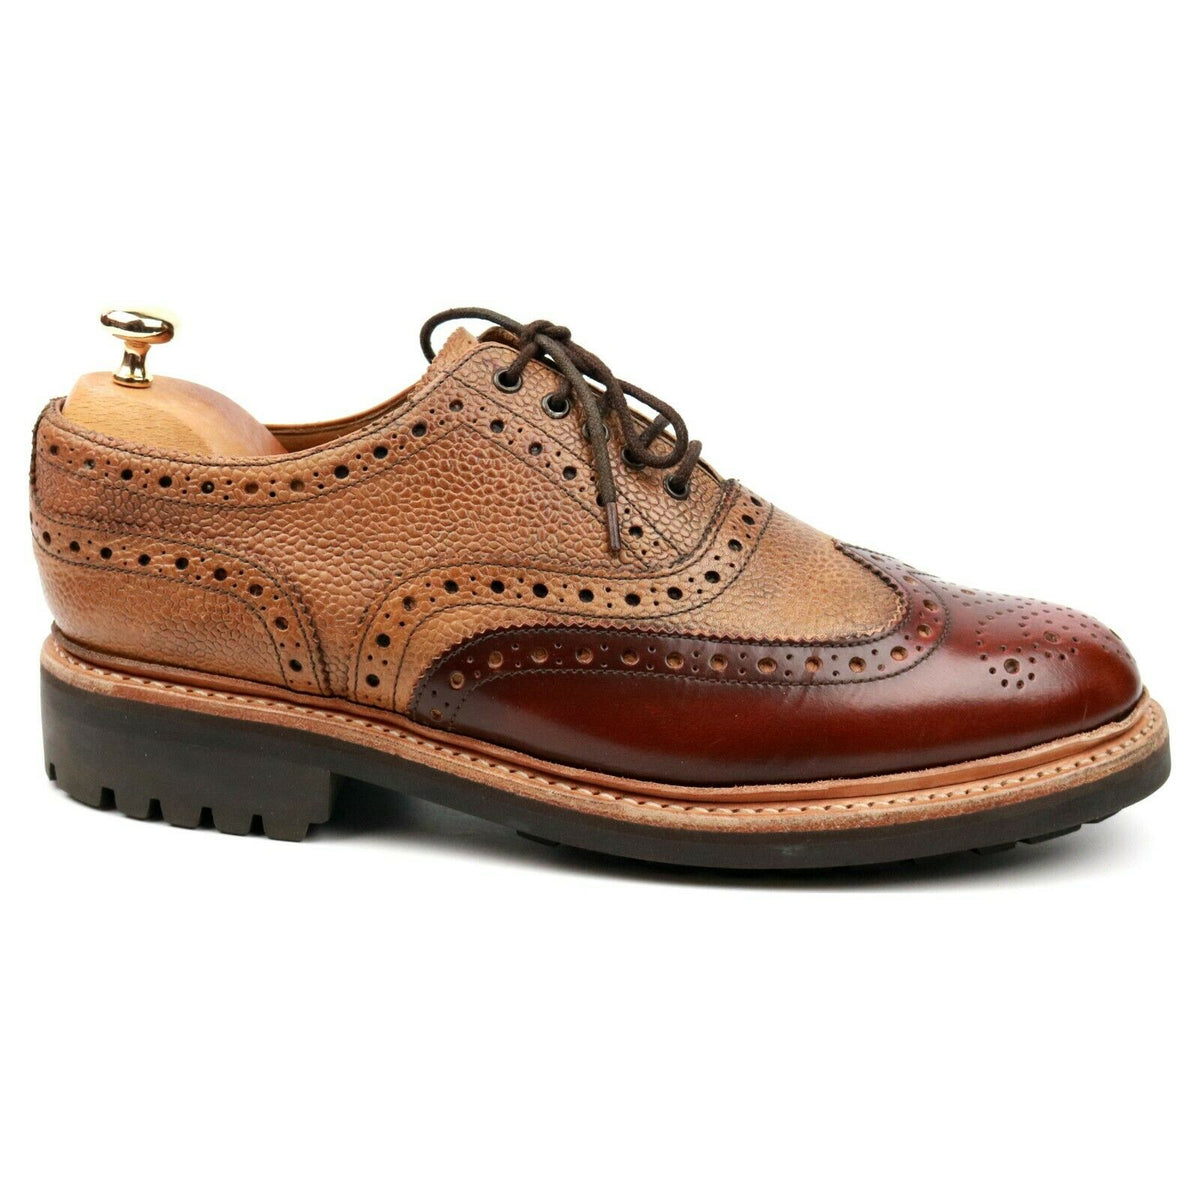 Grenson 'Stanley' Tan/Brown Two Tone Leather Brogues UK 8 G